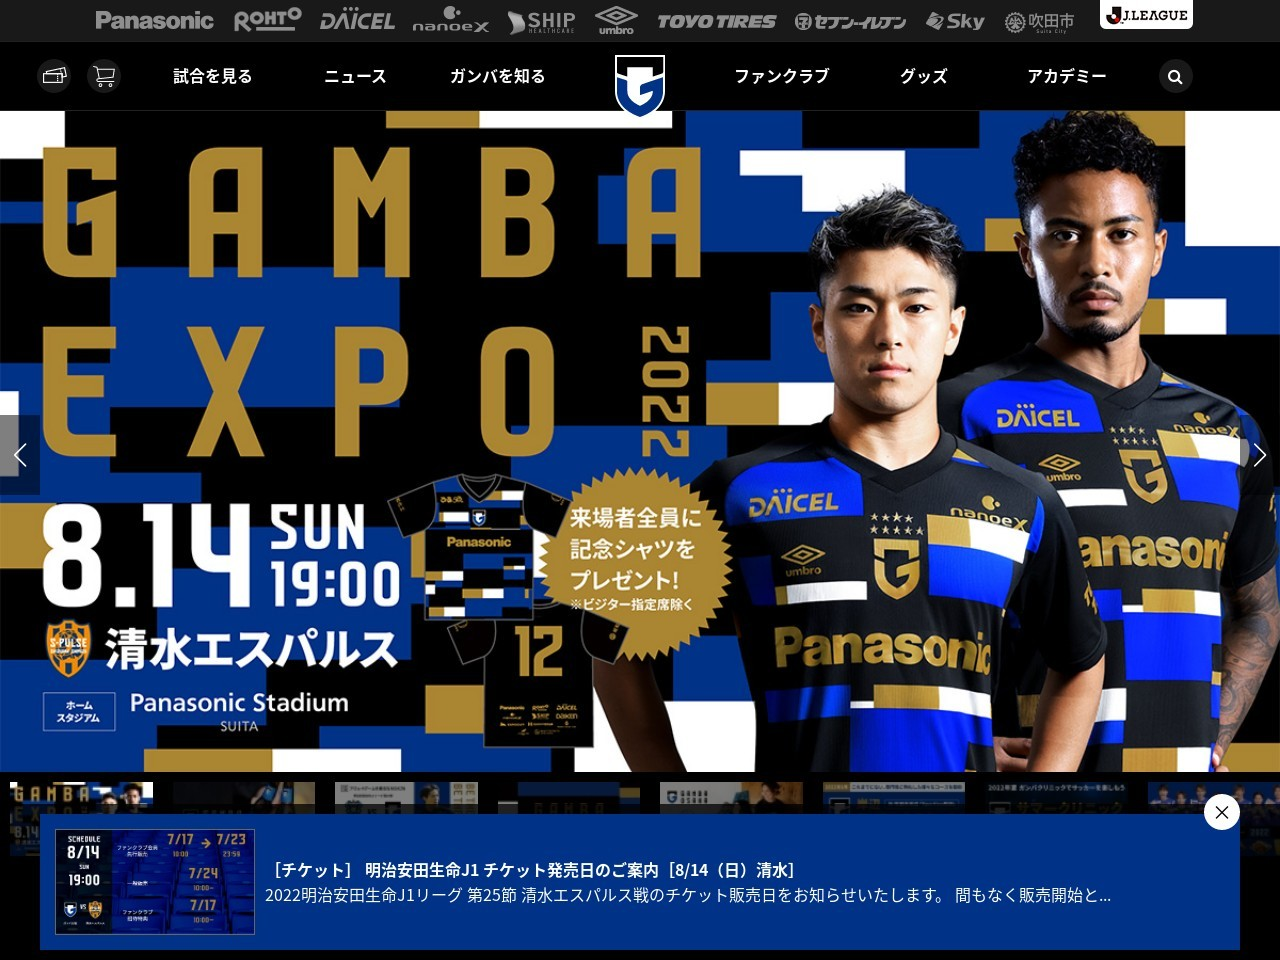 http://www.gamba-osaka.net/news/index/no/6784/